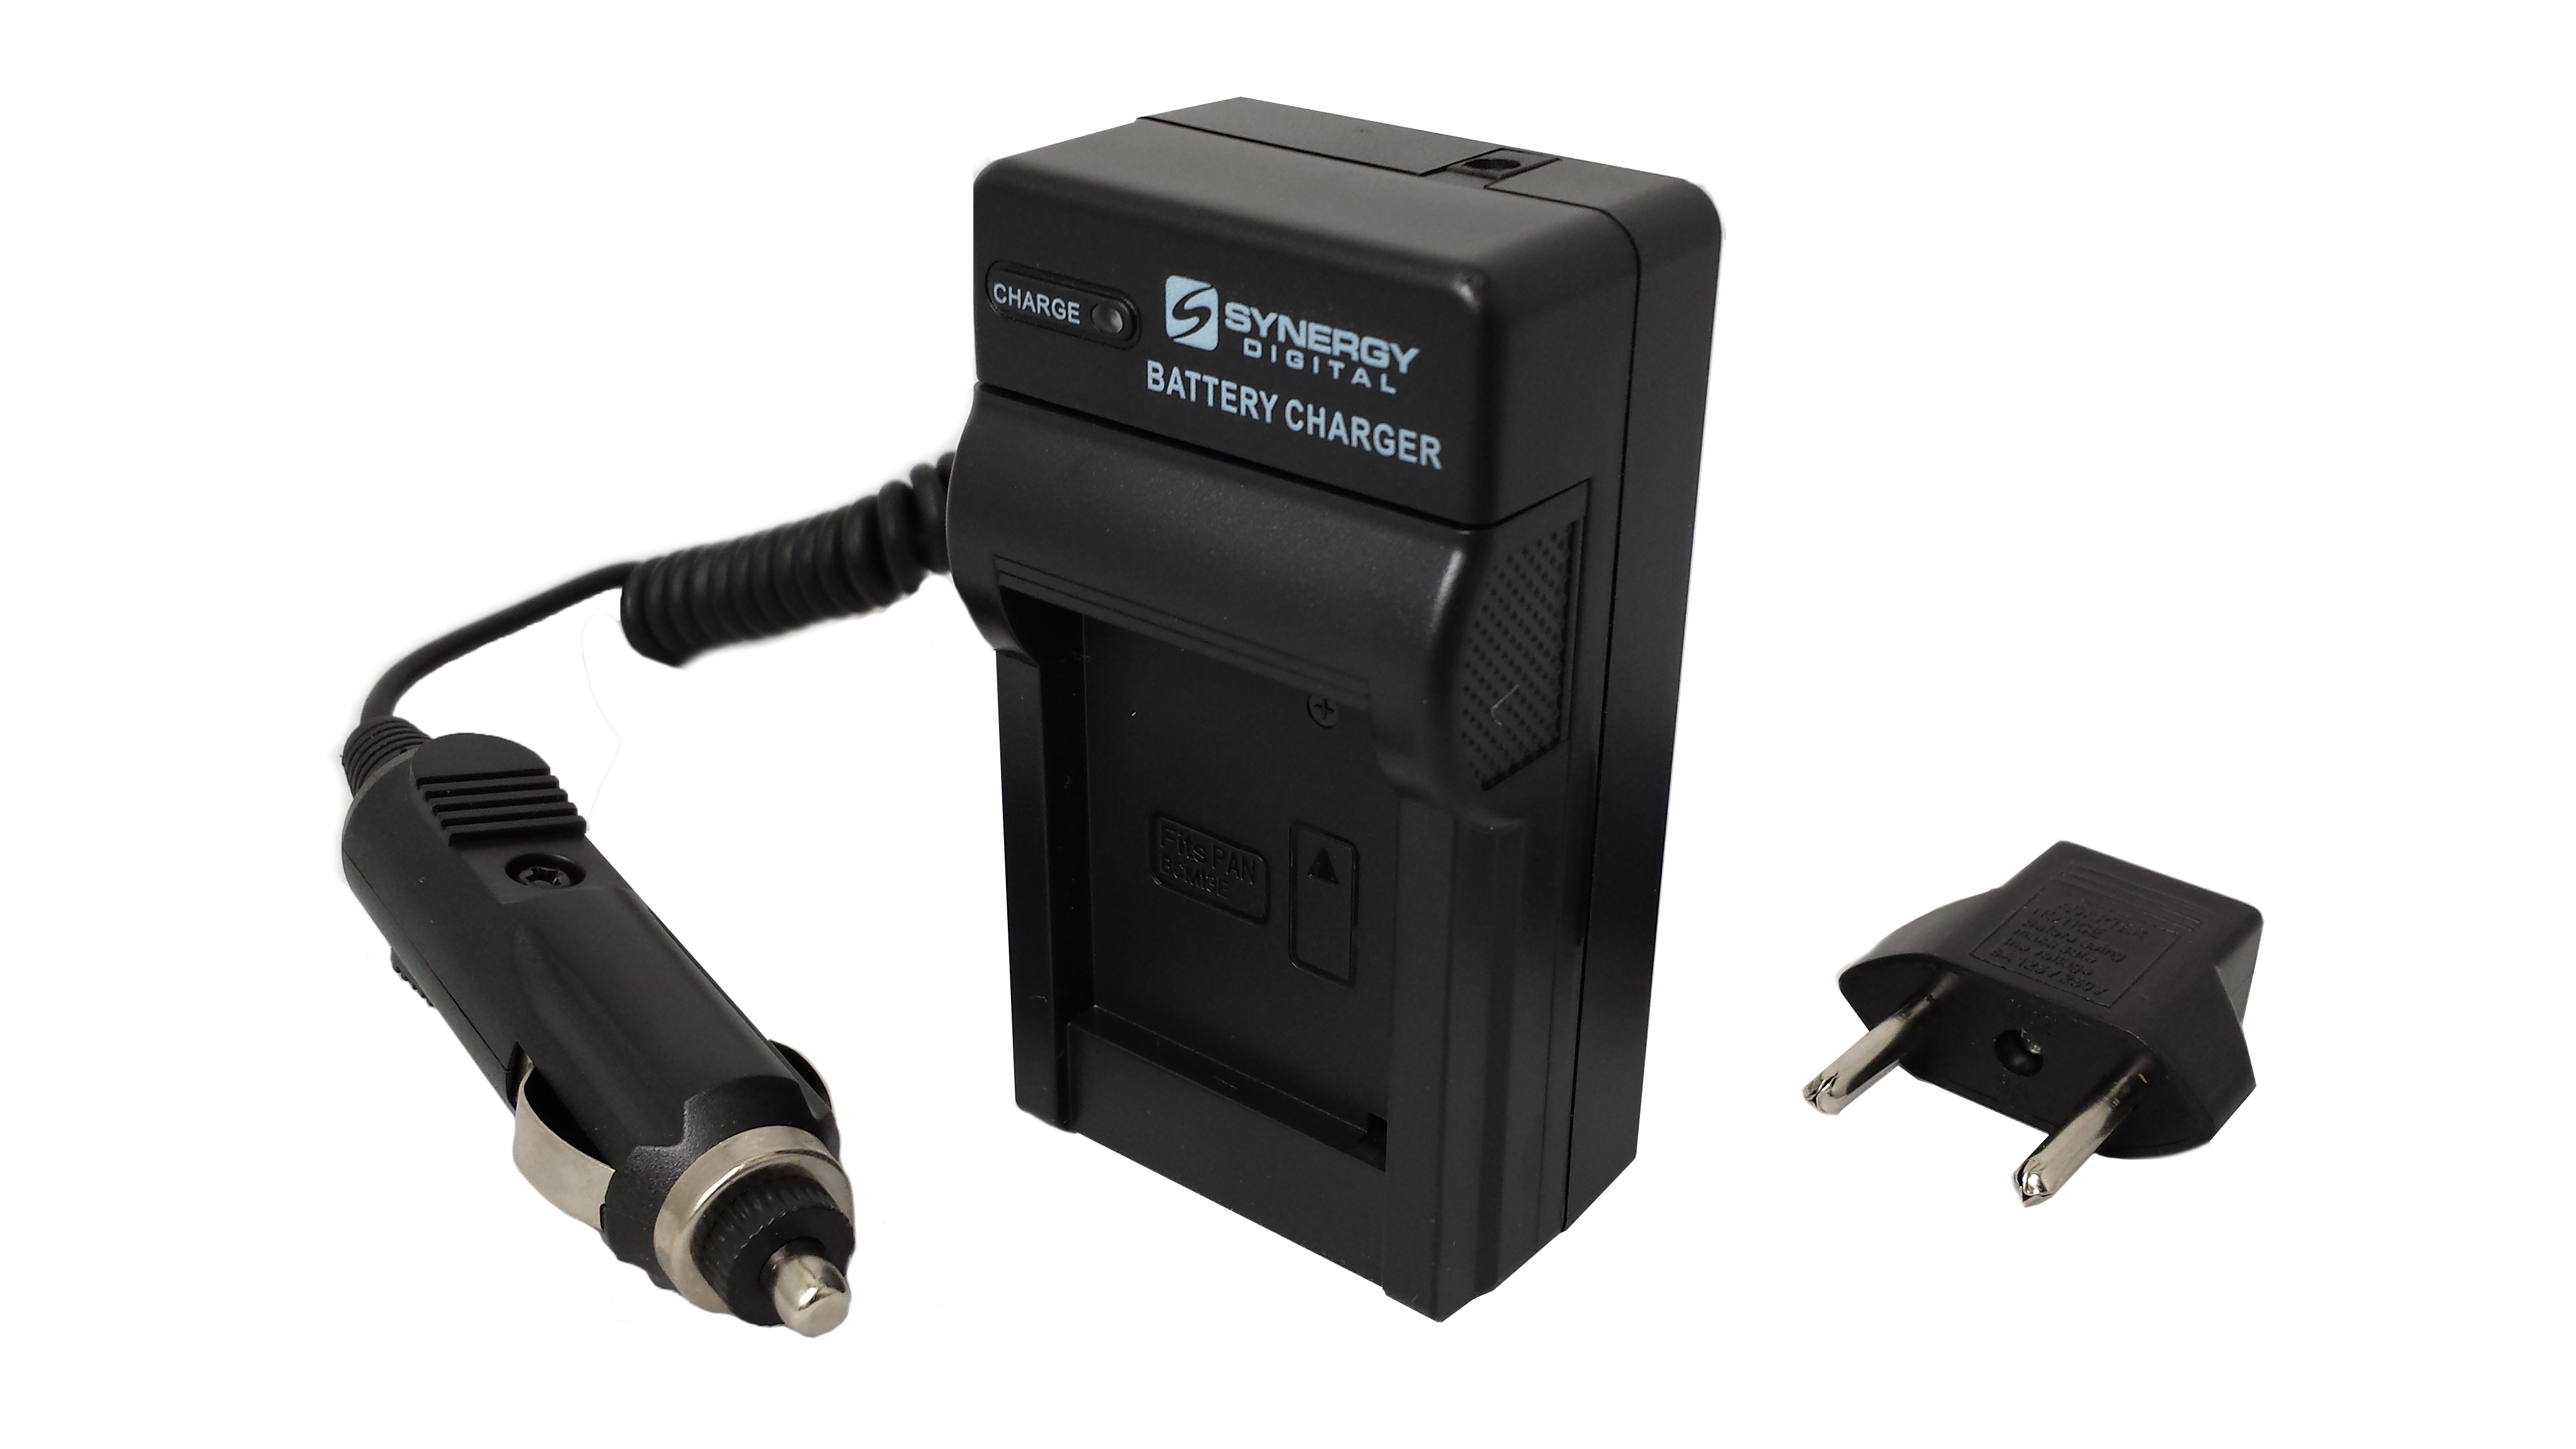 Synergy Digital Samsung VP-W71 Camcorder Battery Charger (110/220v with Car & EU adapters) - Replacement Charger for Samsung SB-L110A SB-L160A & at Sears.com